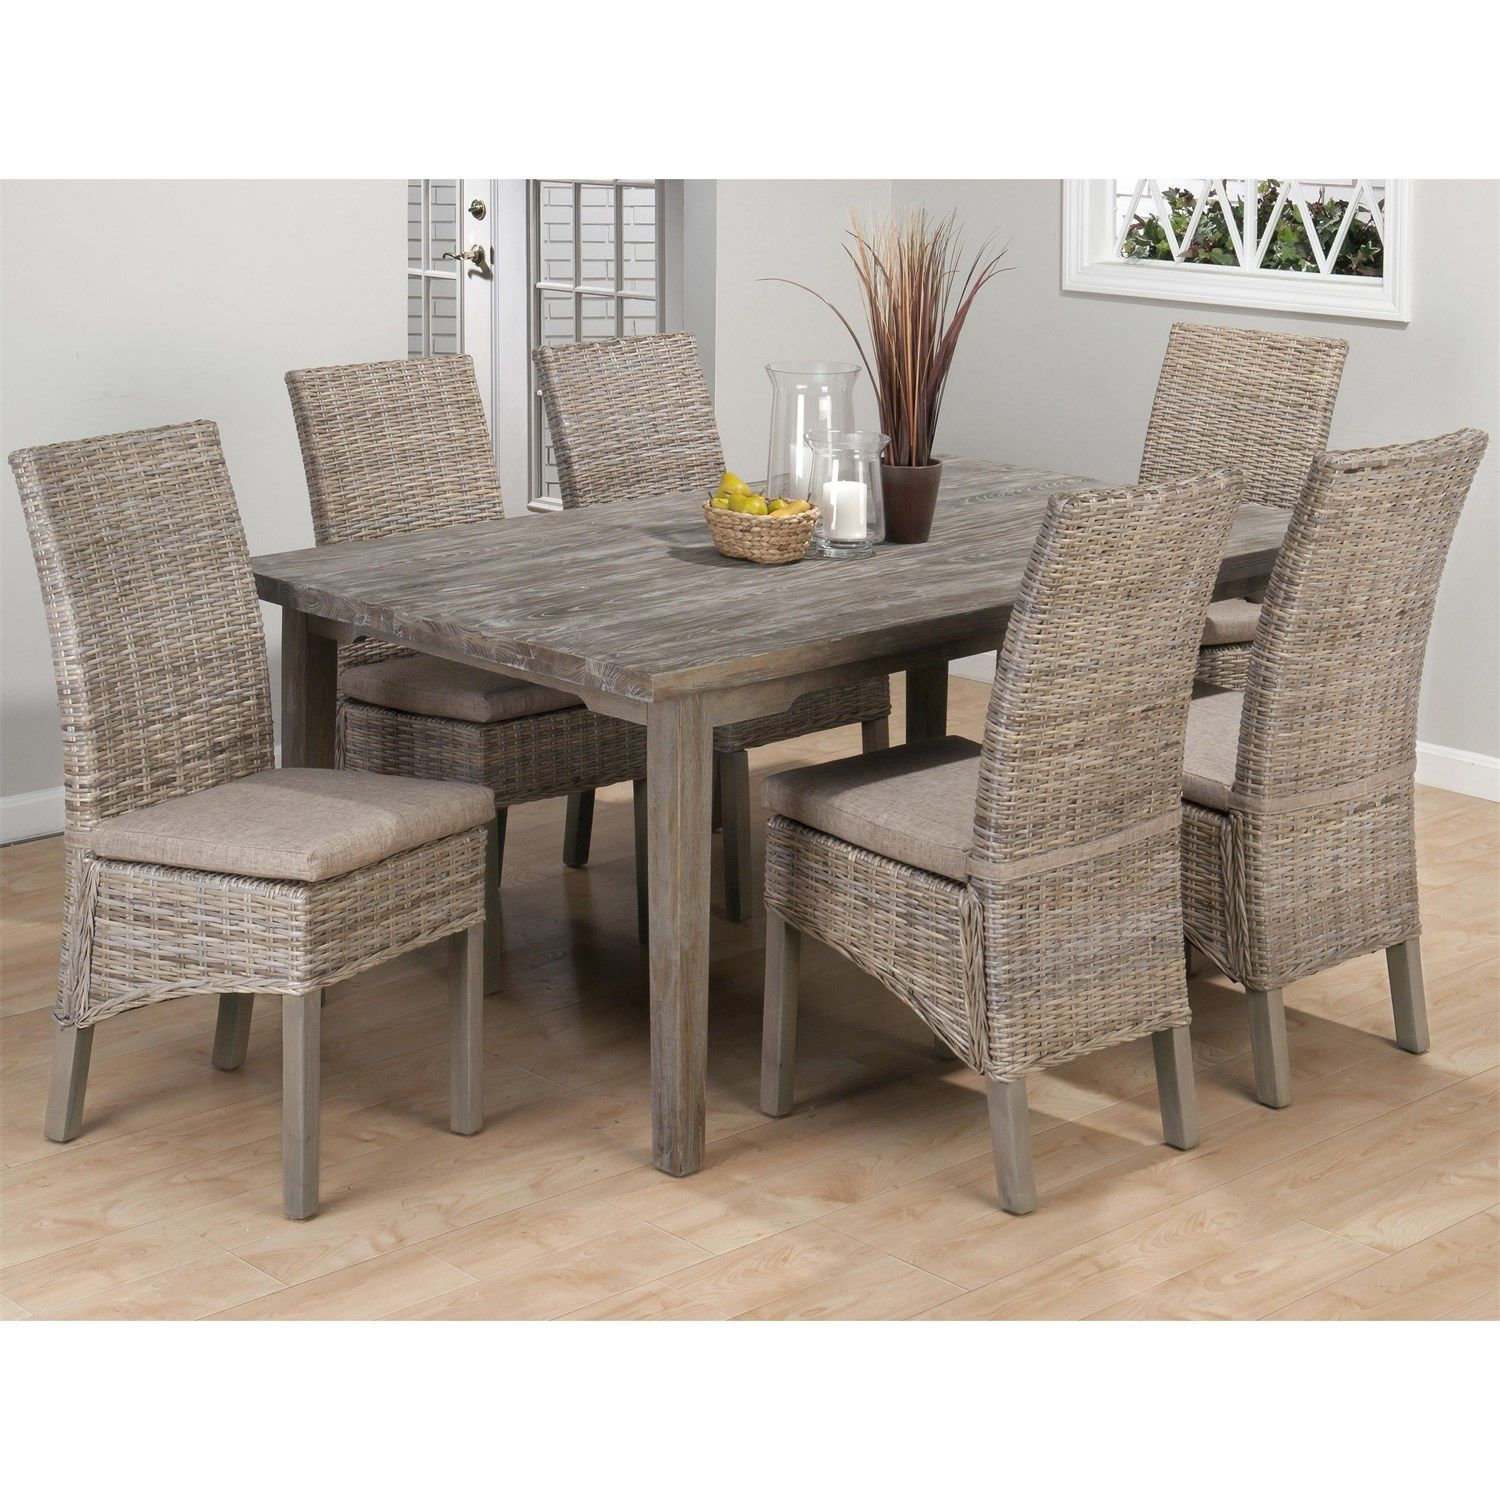 Boca Rattan 1040123Pcs453 Antigua 3 Piece Cafe Set Includes 2 Arm Gorgeous Indoor Wicker Dining Room Sets Design Inspiration